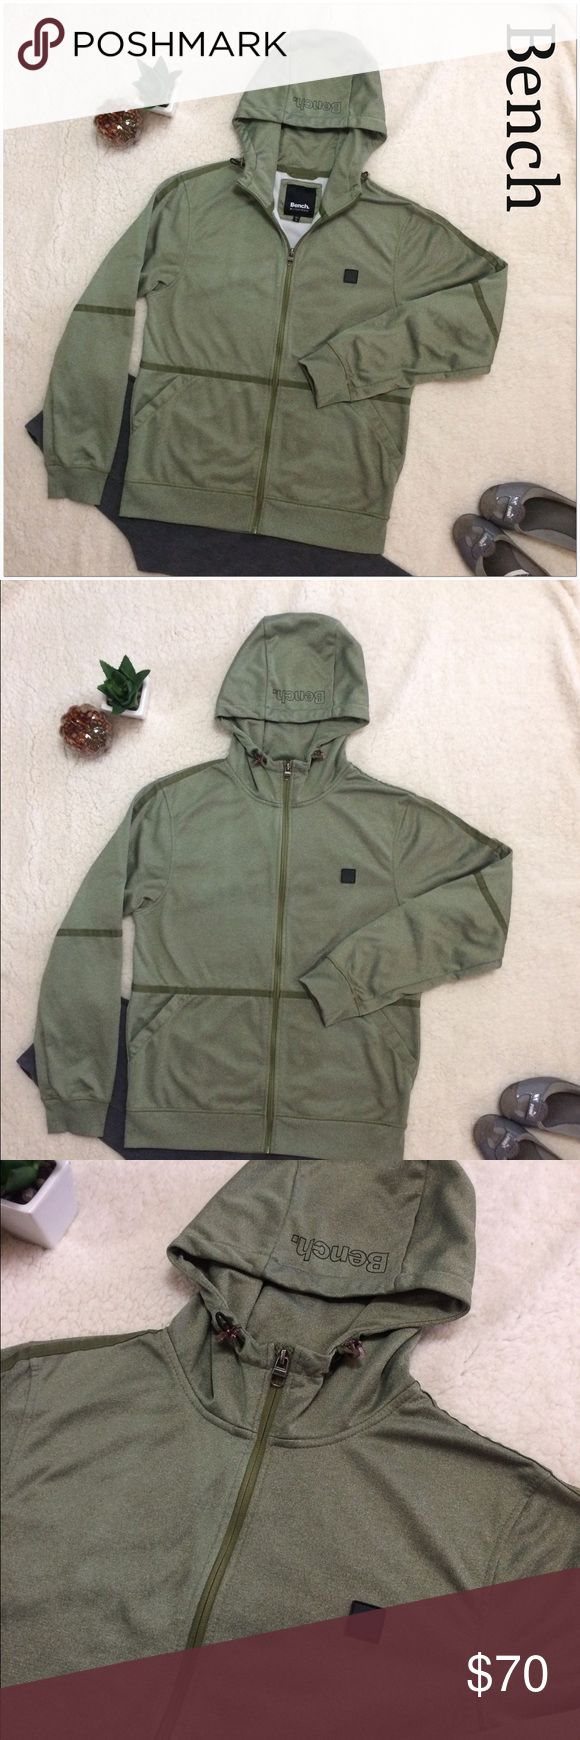 Bench Army Green Full Zip Hoodie Jacket - NWOT Fantastic medium weight Jacket from Bench. Great fall color and very light even though it's warm. Perfect condition Bench Jackets & Coats